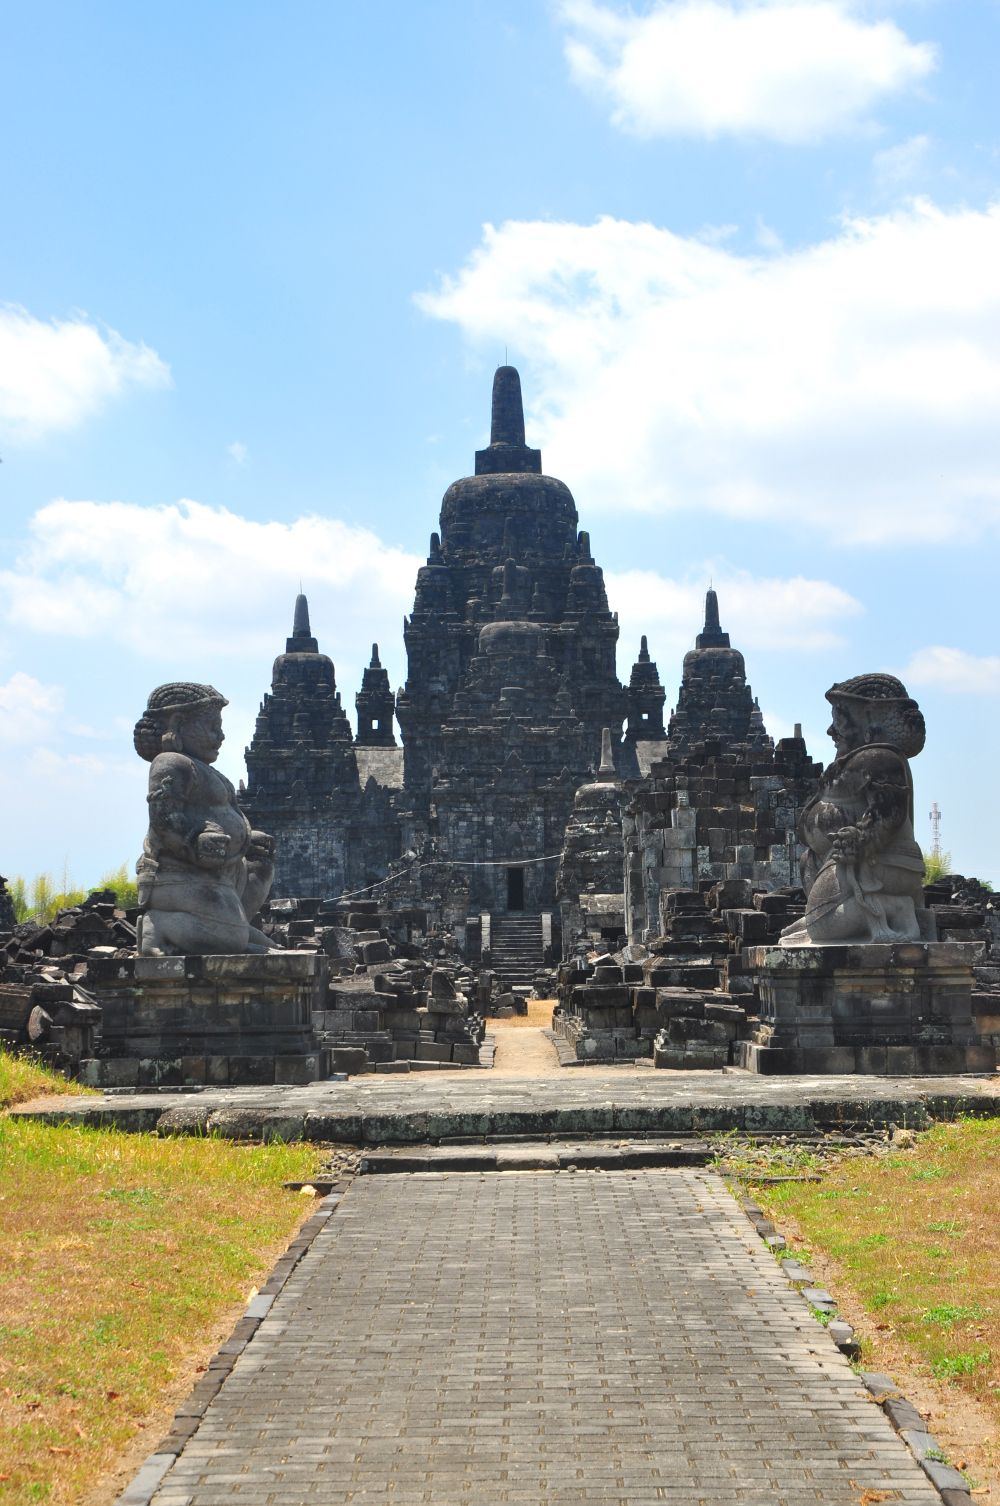 Temple guardians at Candi Sewu - copyright architectureofbuddhism.com - read the travel diary at http://architectureofbuddhism.com/books/temples-borobudur-region-travel-diary-day-one/